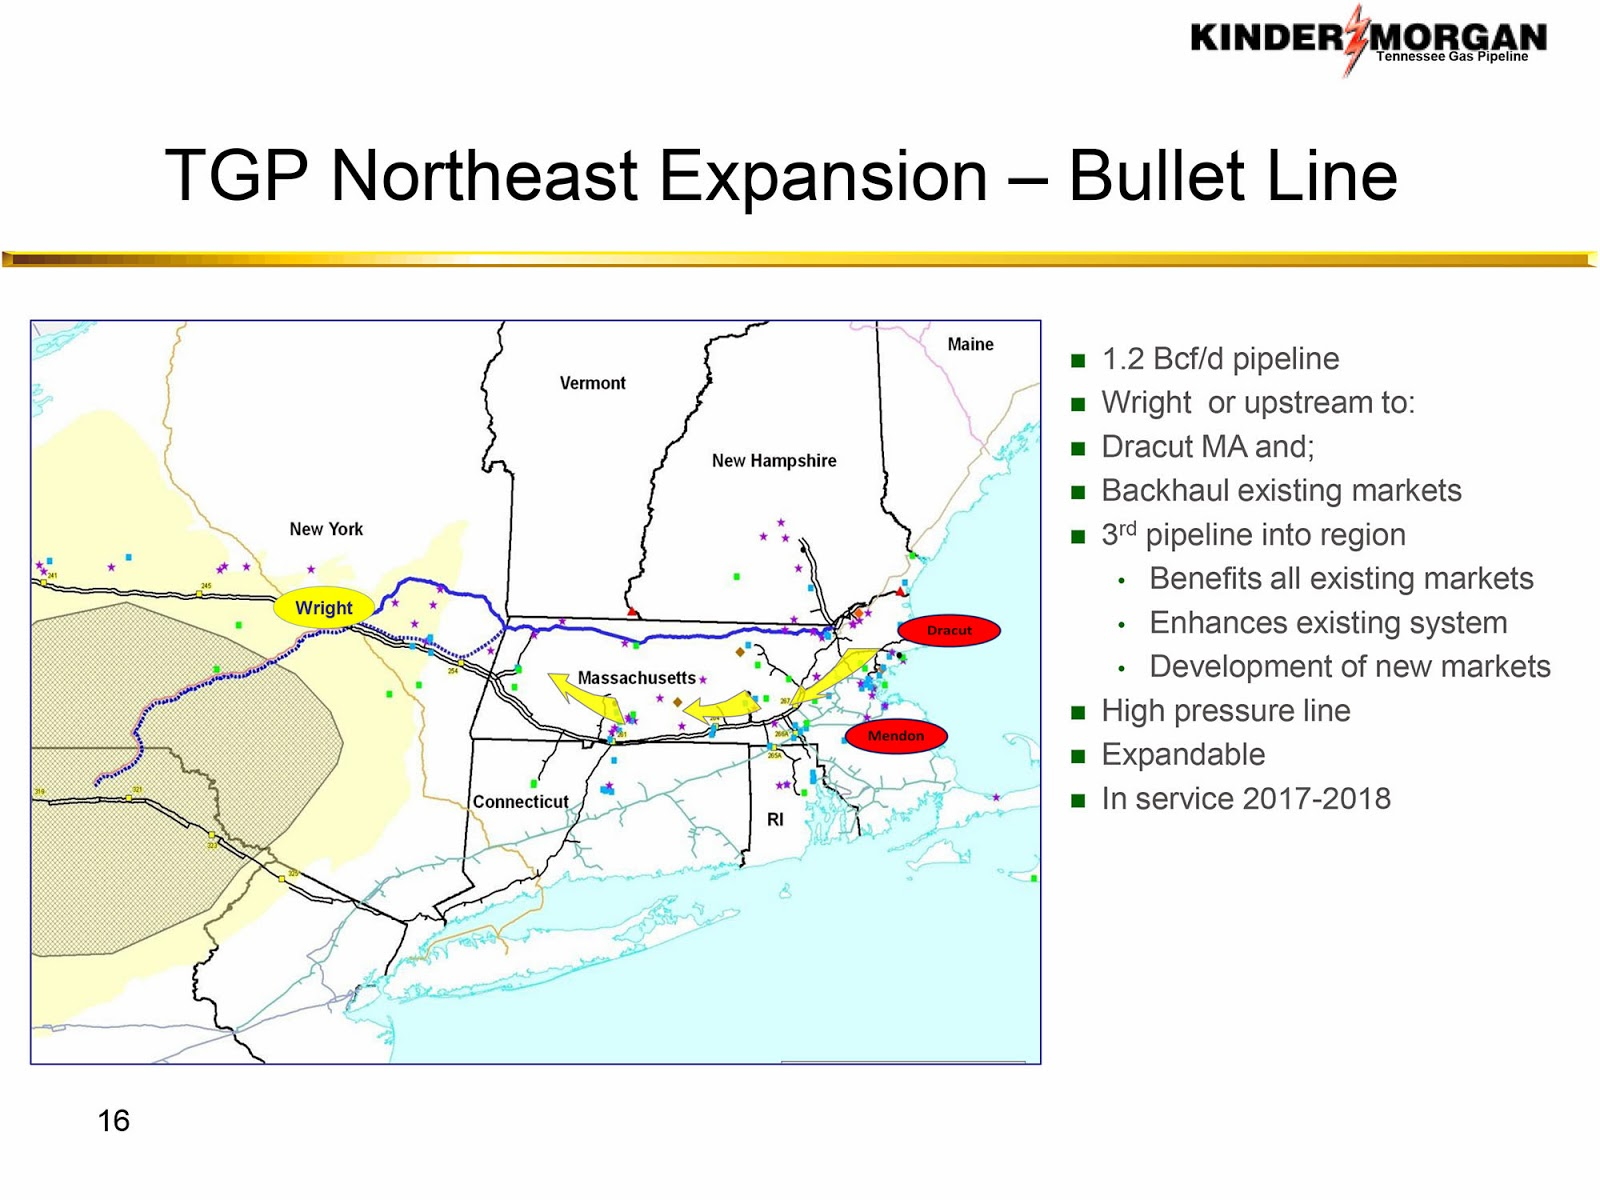 NY Shale Gas Now!: Quietly Re-Routed: Kinder Morgan's